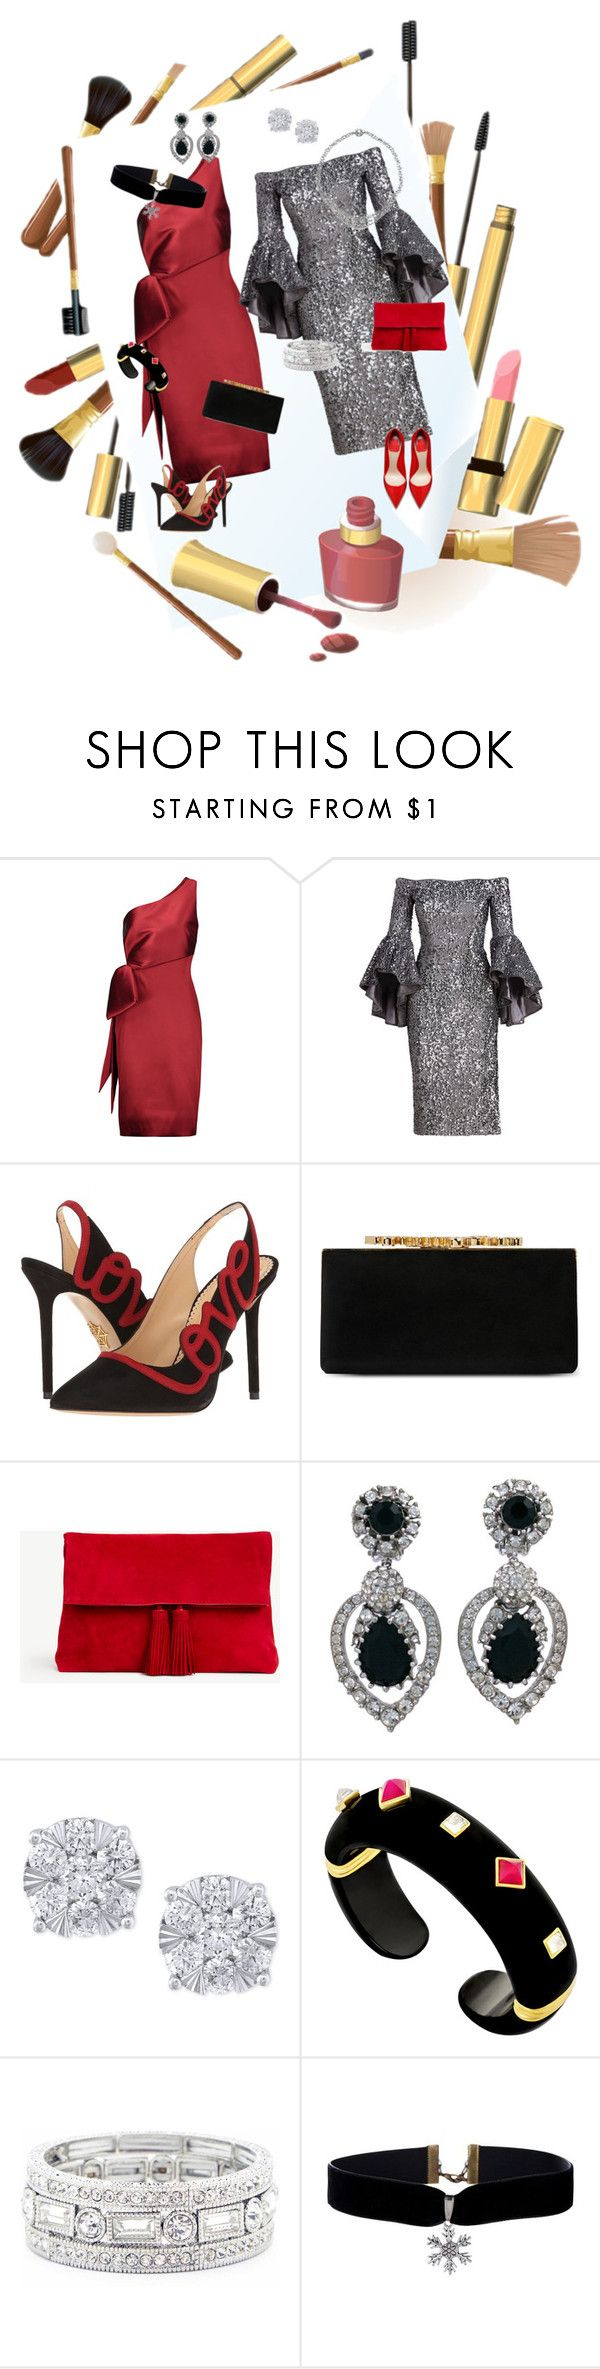 """Girls Evening Out"" by jeanstapley ❤ liked on Polyvore featuring NOIR Sachin + Babi, Milly, Charlotte Olympia, Jimmy Choo, Ann Taylor, Ciner, Effy Jewelry and Sole Society"